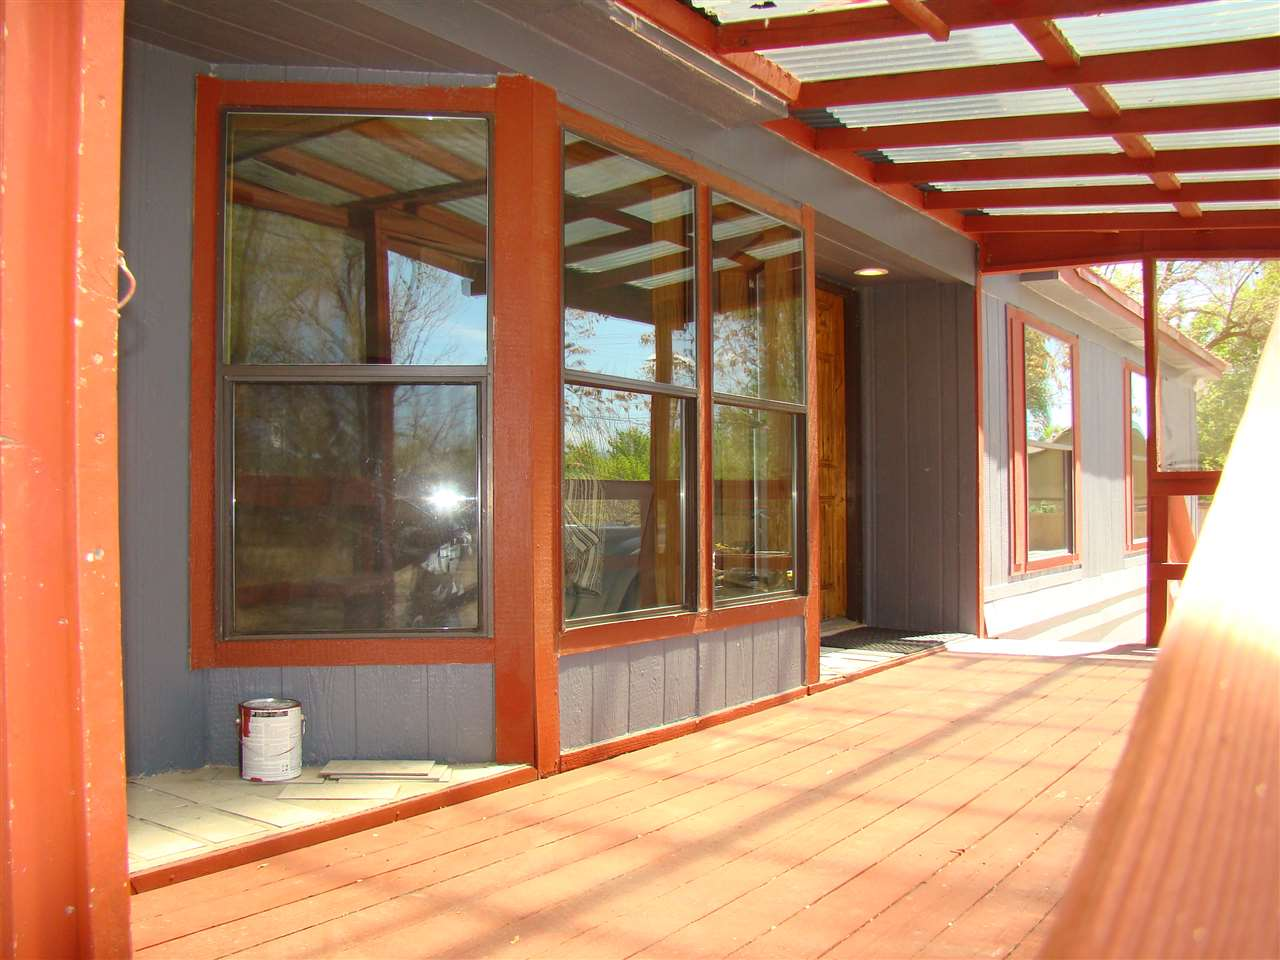 3152 F 1/2 Road, Grand Junction, CO 81501